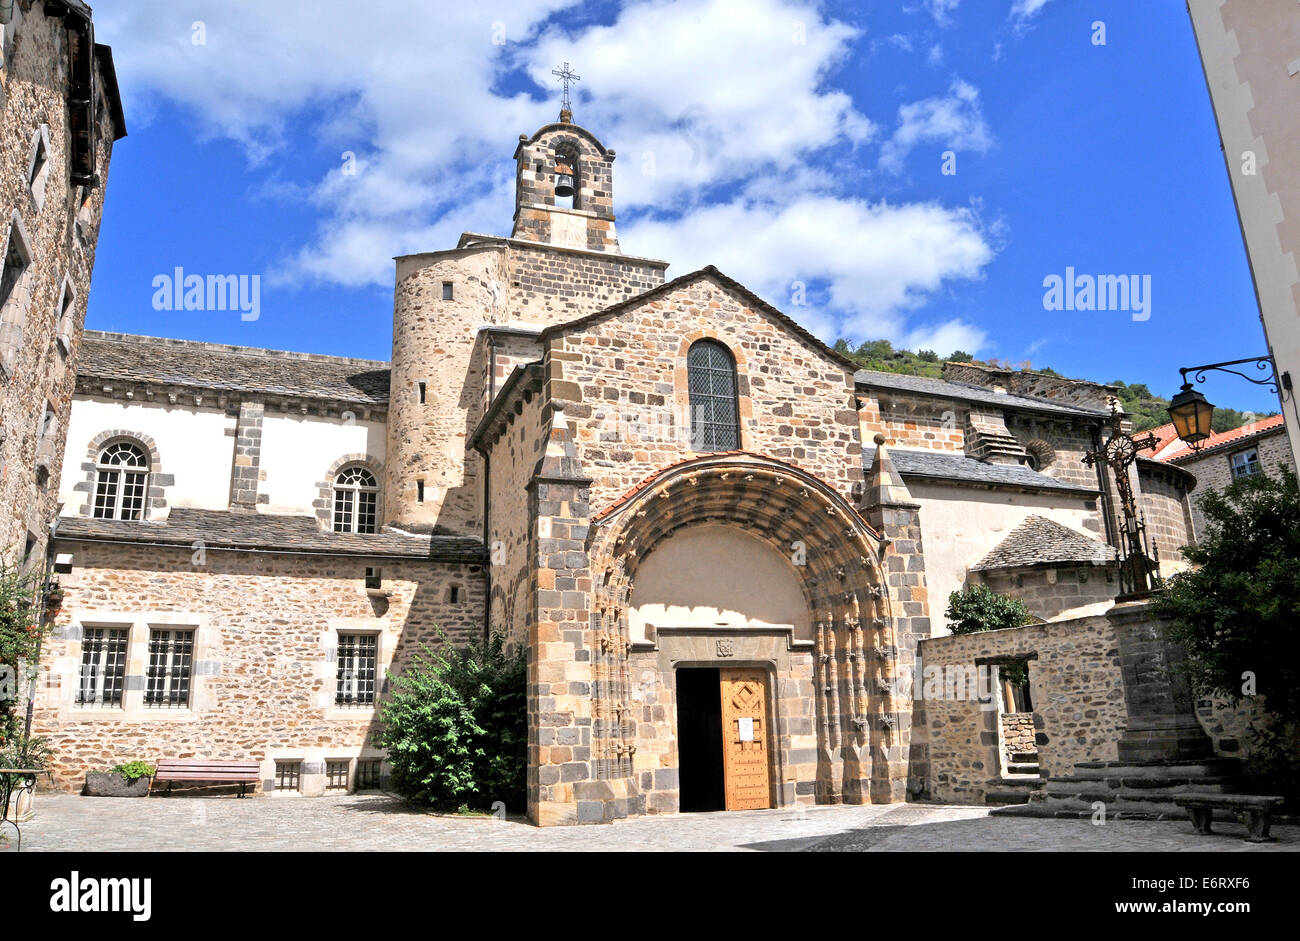 The Romanesque church of Saint-Pierre in the medieval city of Blesle, Haute Loire, Auvergne, France Stock Photo